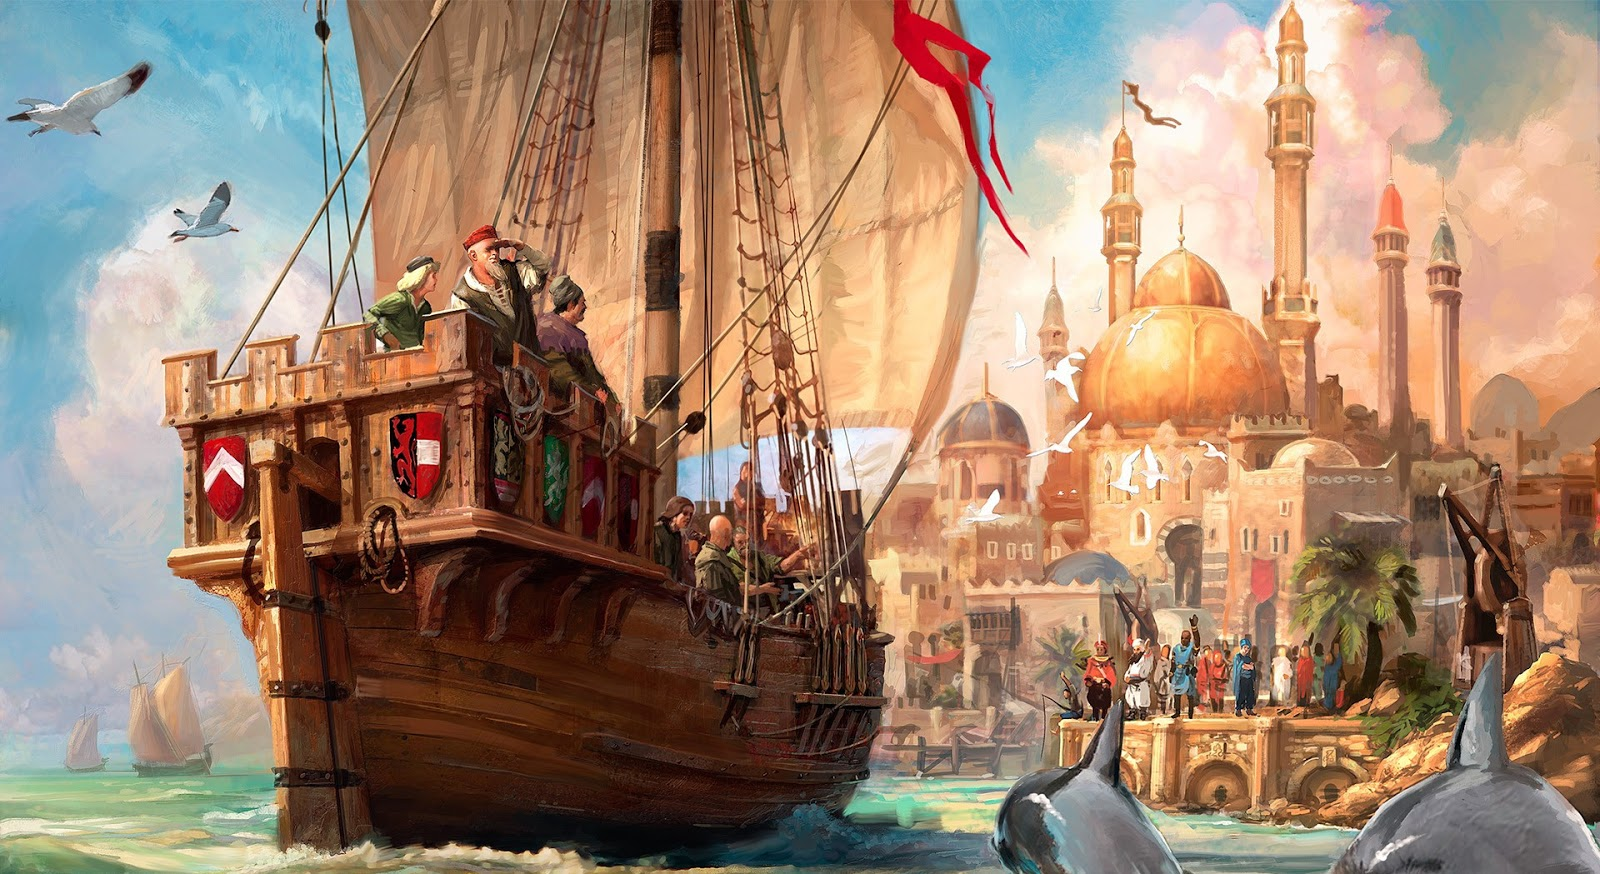 Top 25 Samsung Galaxy S4 Screen Saver Wallpapers: 3D Pirates Ship - HD Wallpapers